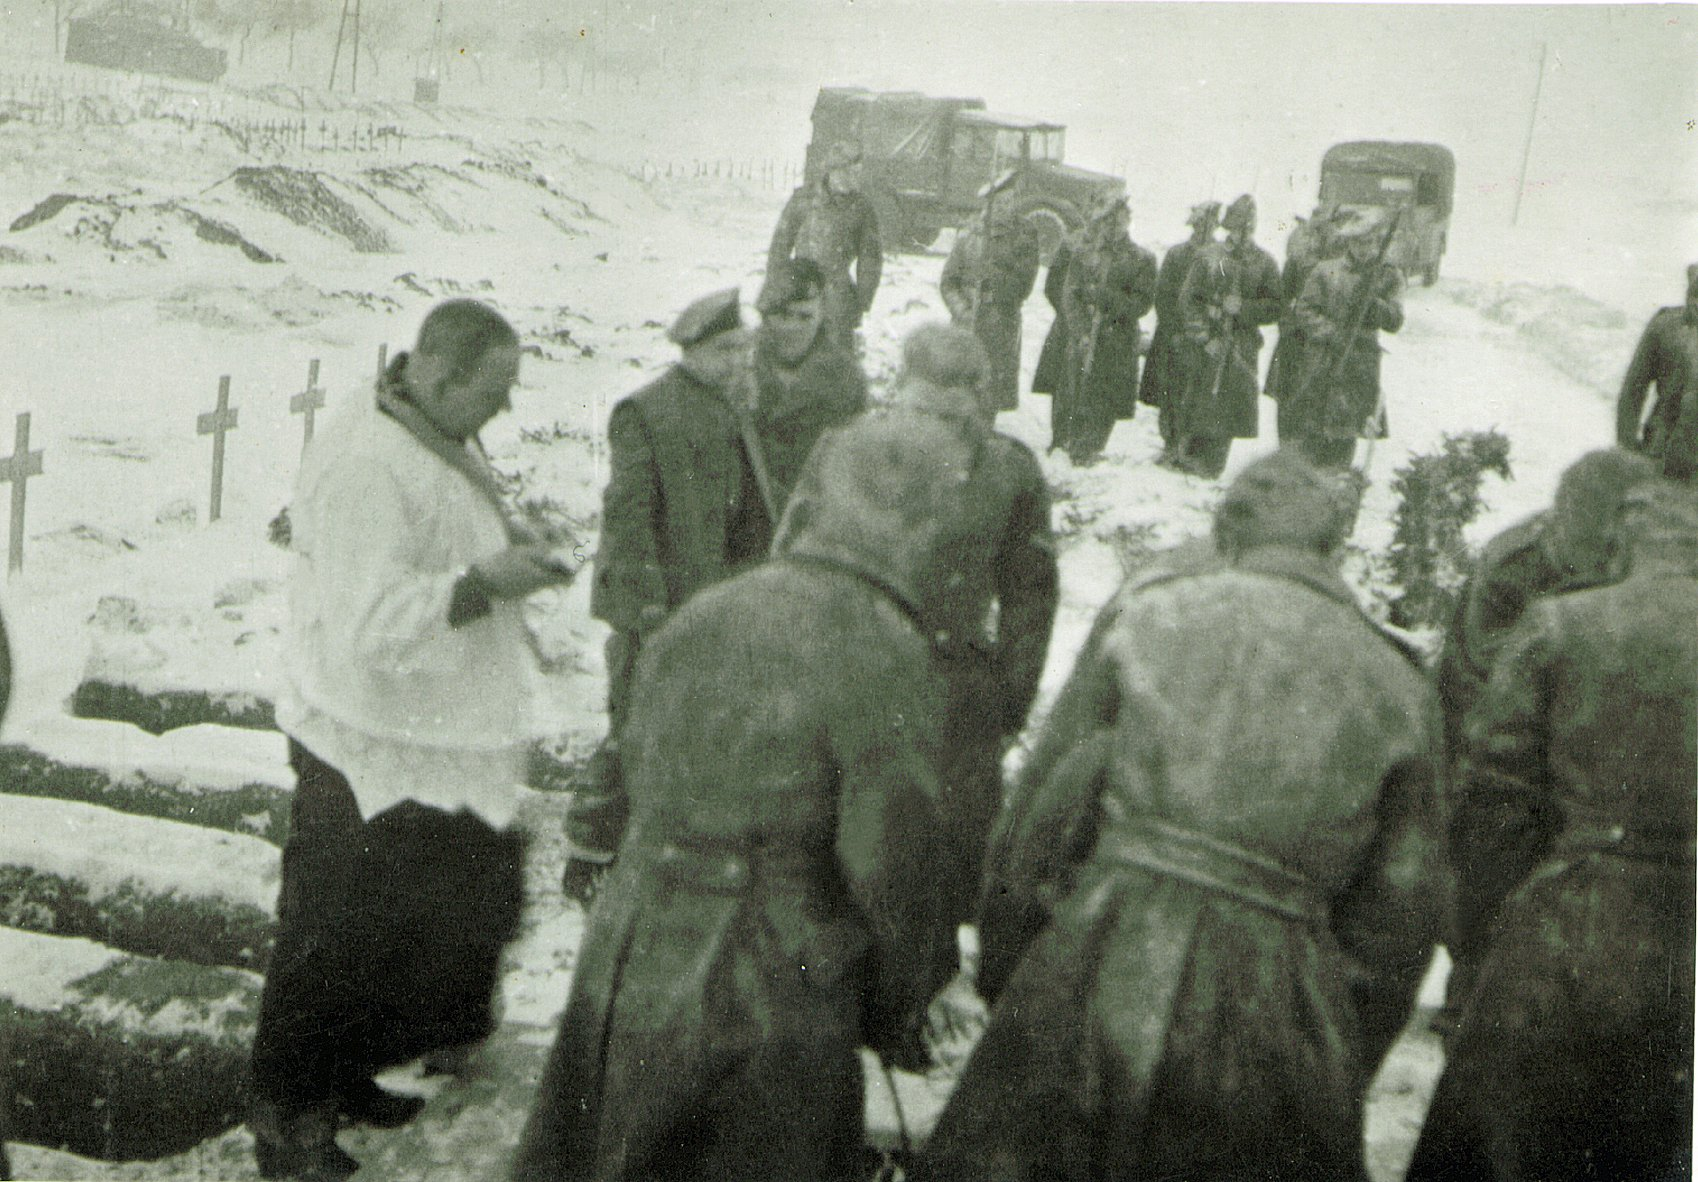 A cold snowy burial service, somewhere in NW Europe 1944/45. The cruel reality of war!